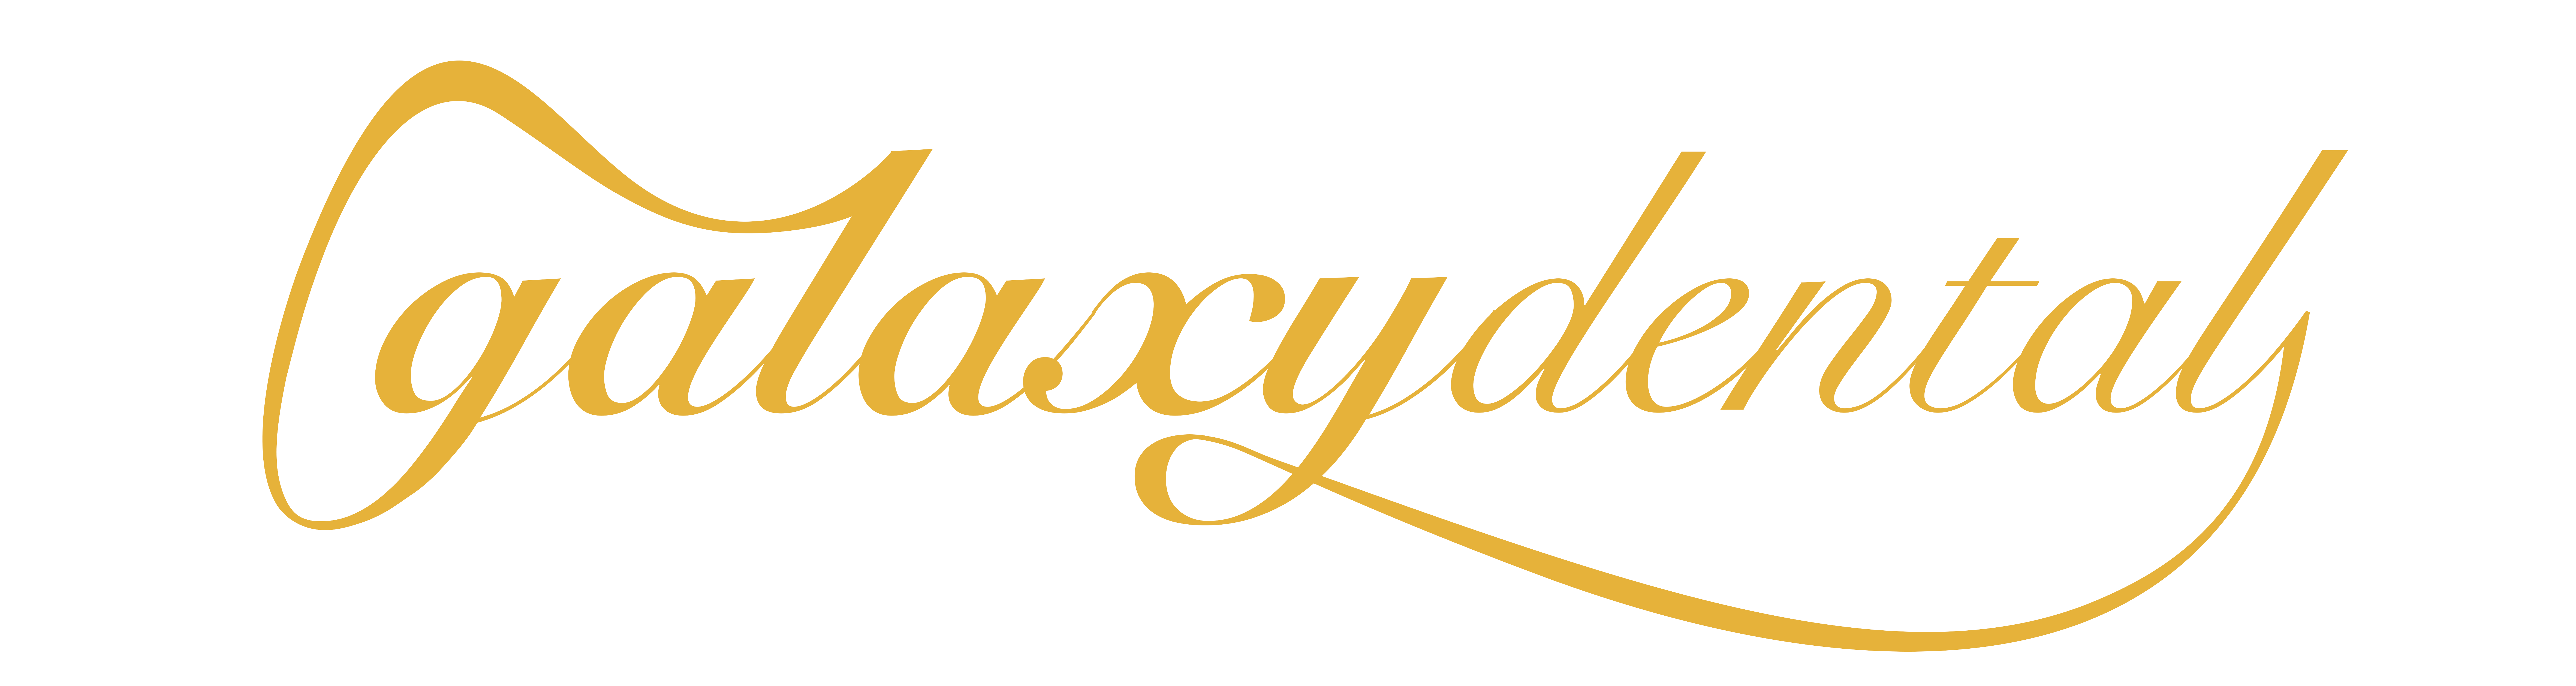 https://bacsynhakhoa.vn/img/logo-galaxy-dental.png